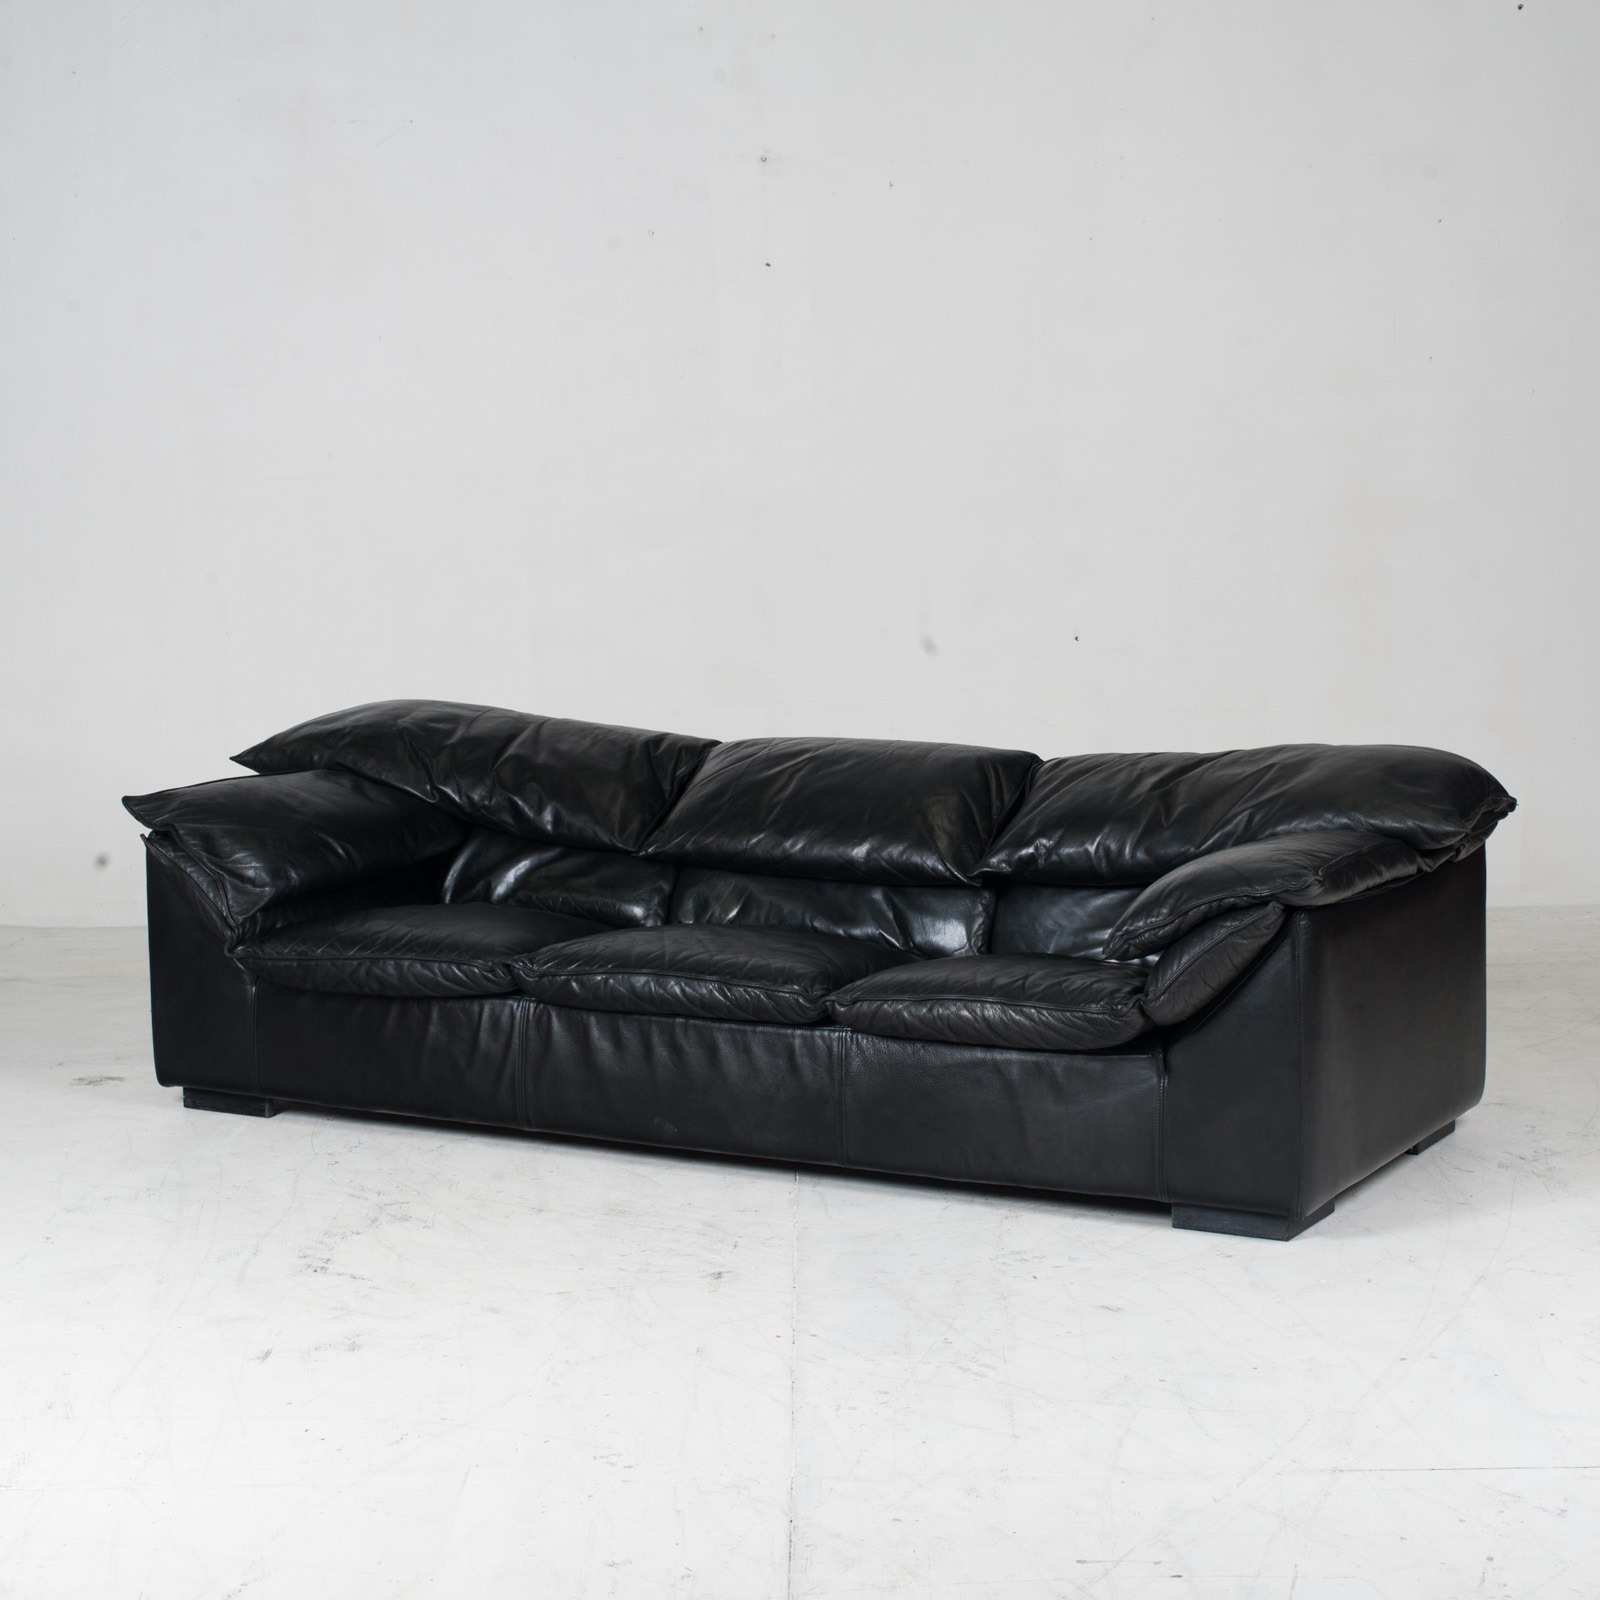 Model Monza 3 Seat Sofa By Eilerson In Black Leather 1970s Denmark 04